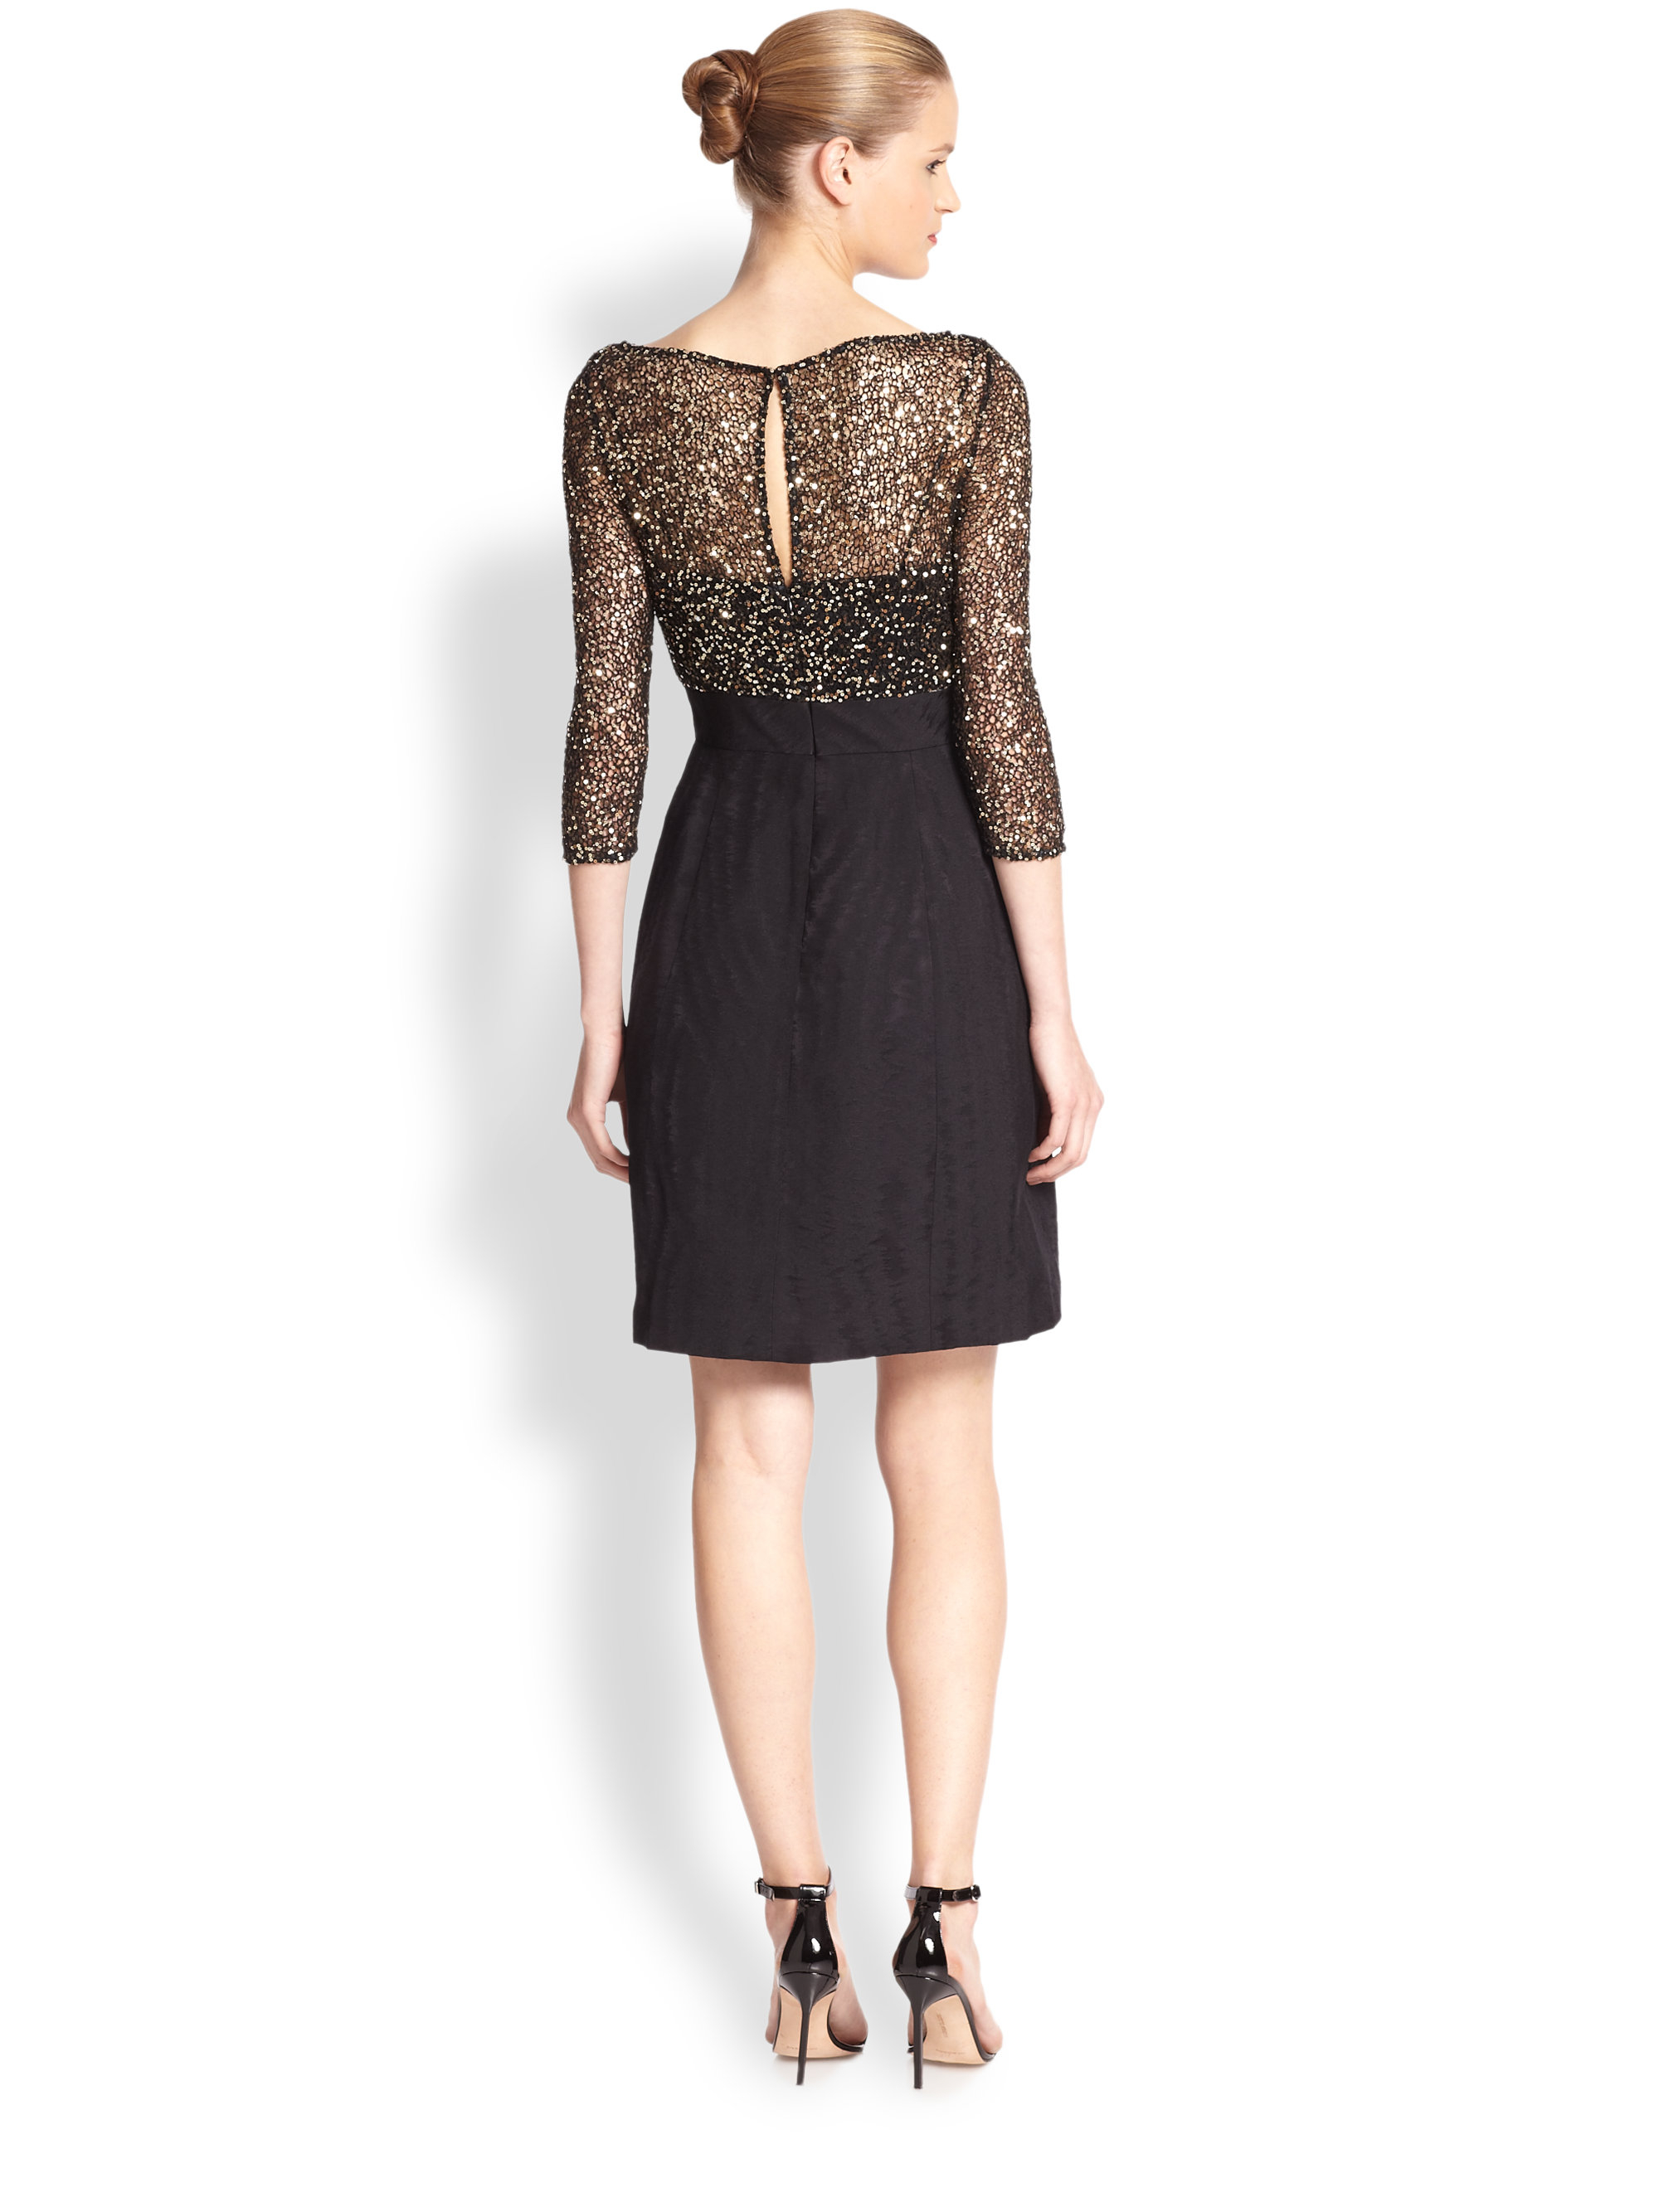 Lyst - Kay Unger Sequin-top Cocktail Dress in Black